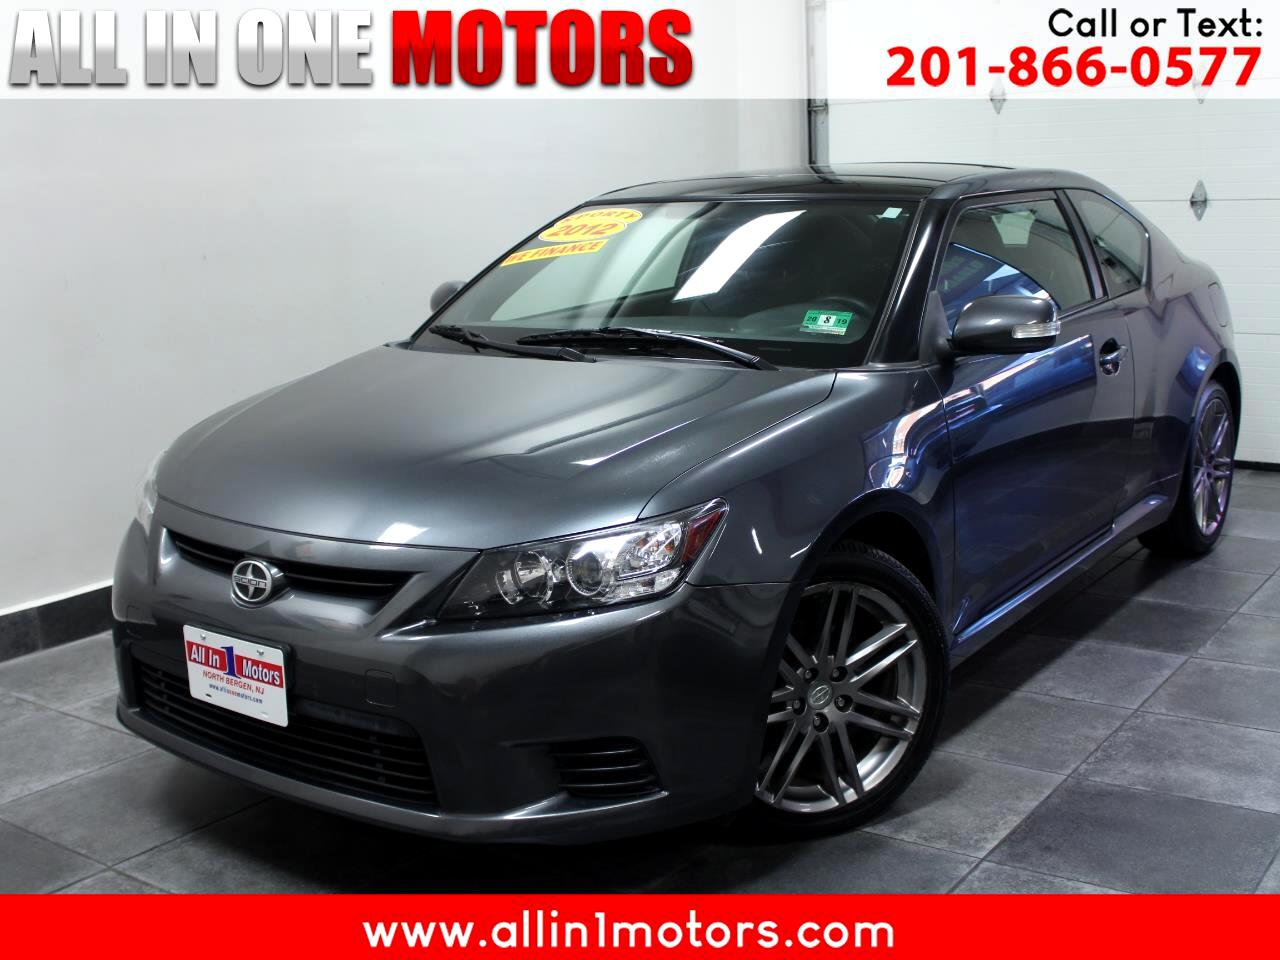 2012 Scion tC 2dr HB Auto (Natl)